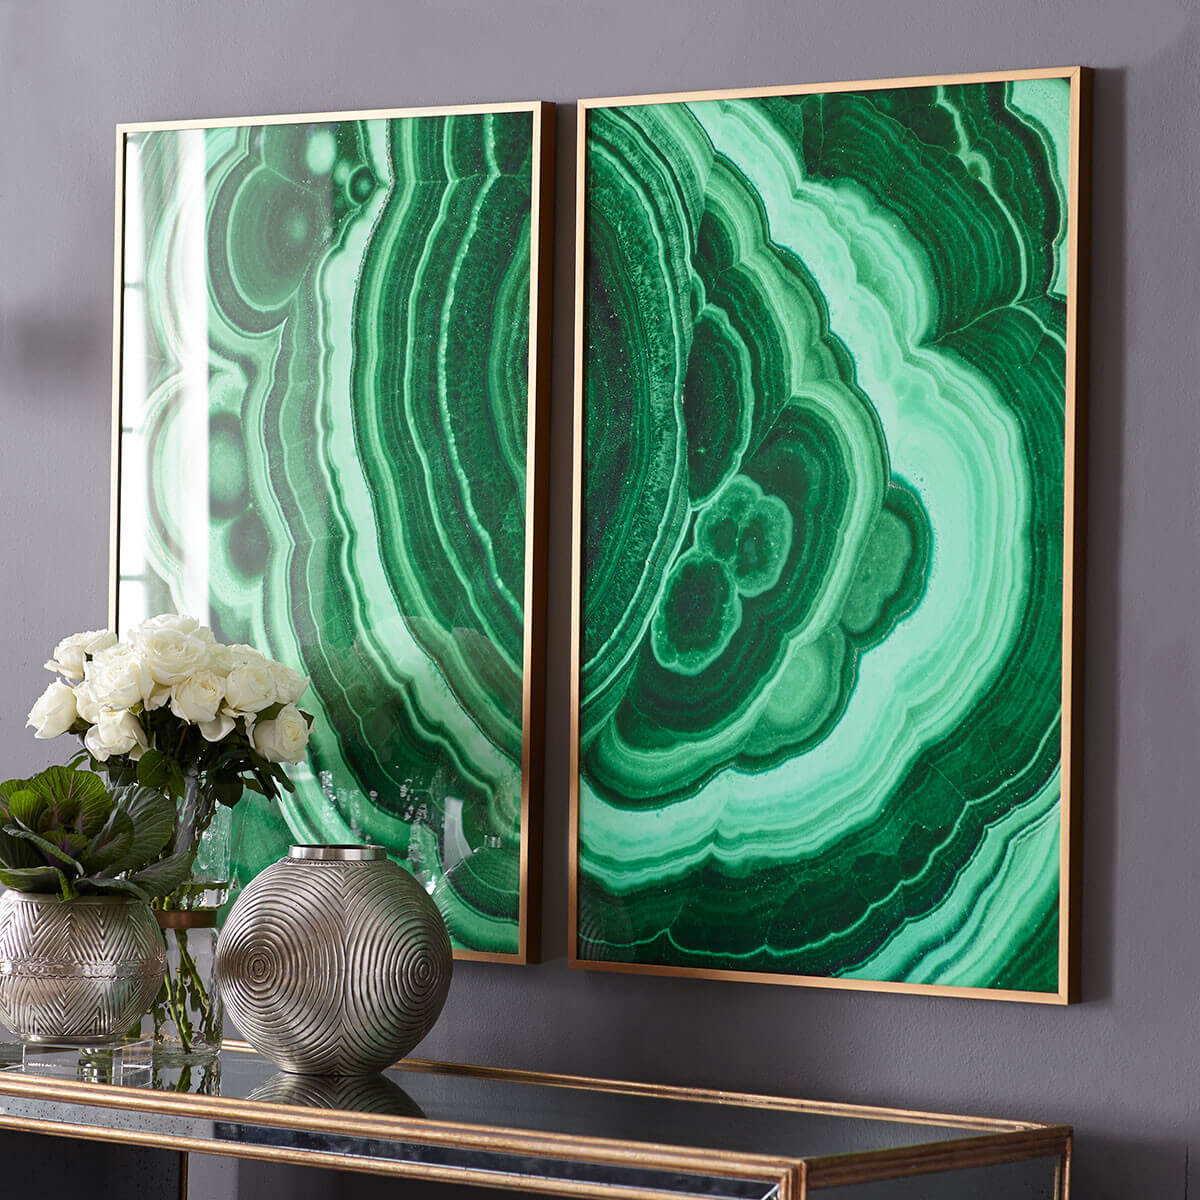 Adding Colors and Textures to Your Walls